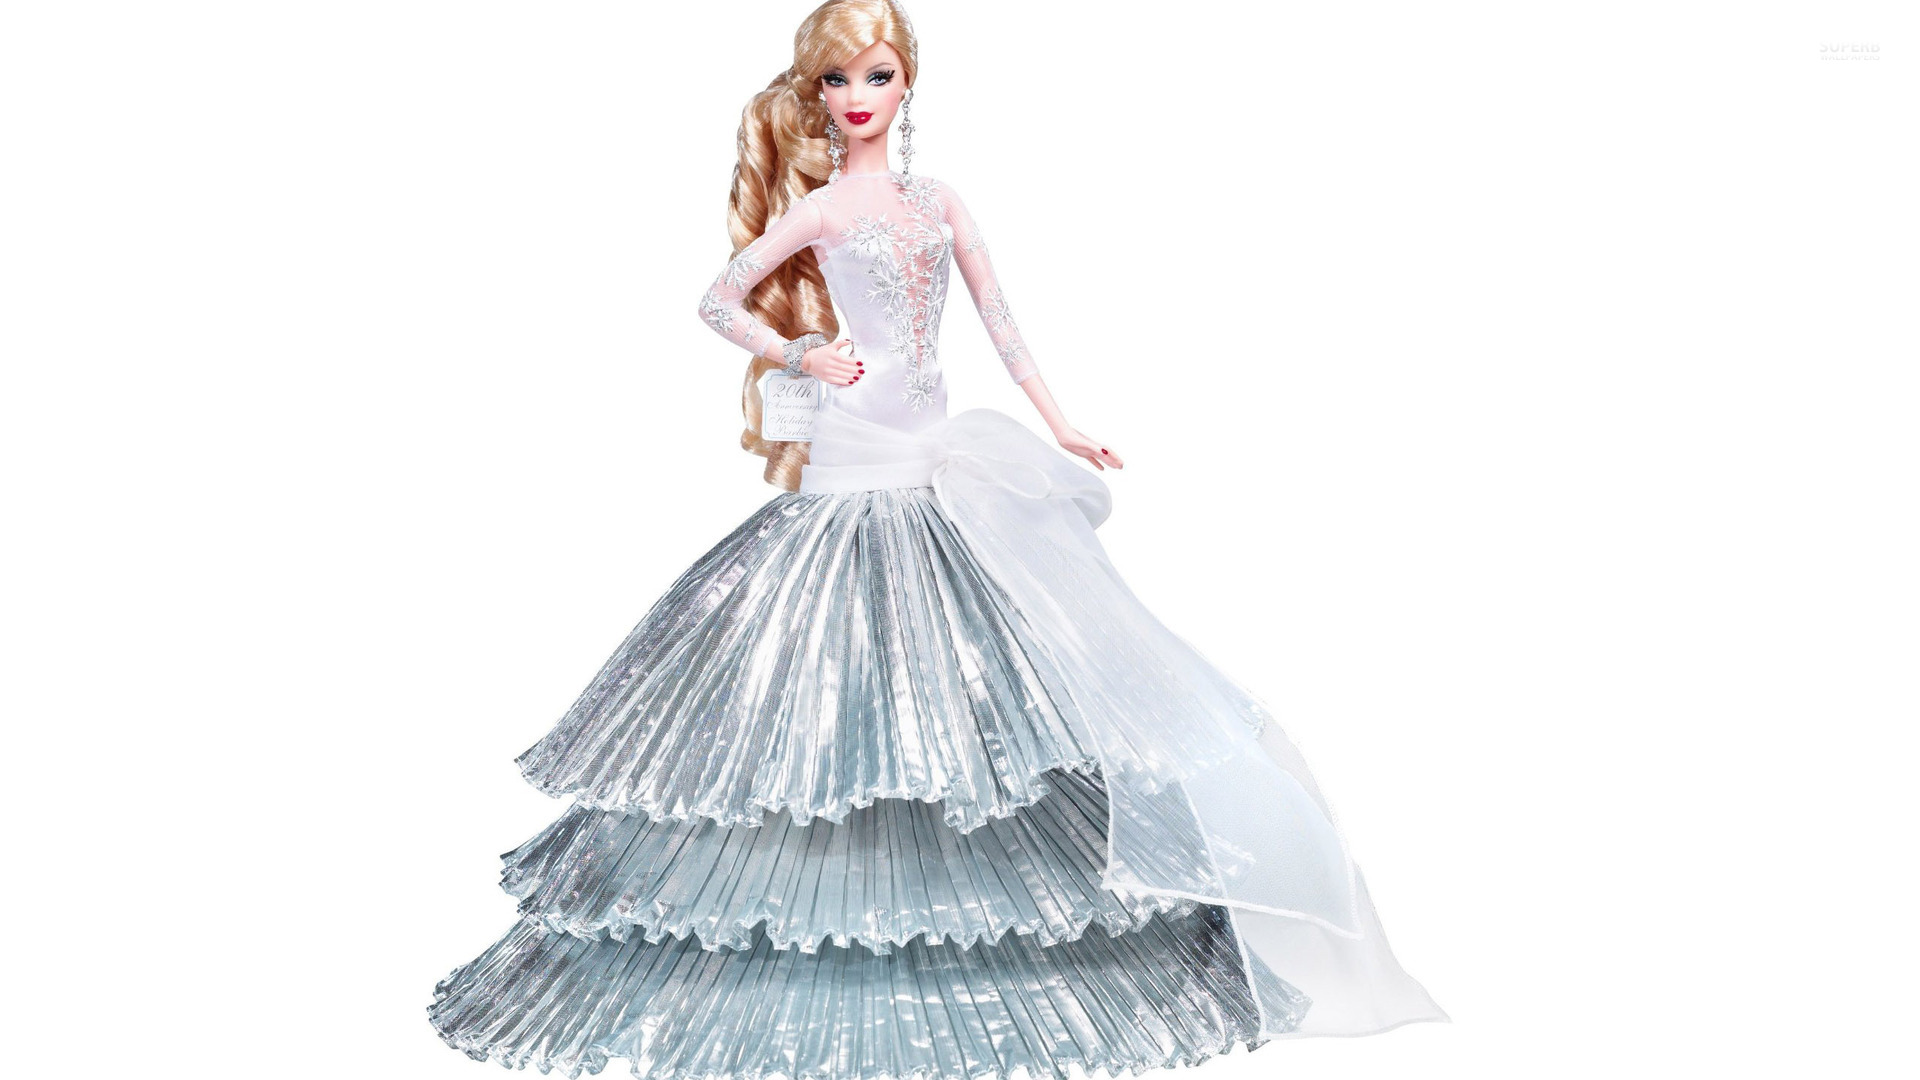 barbie doll images free download